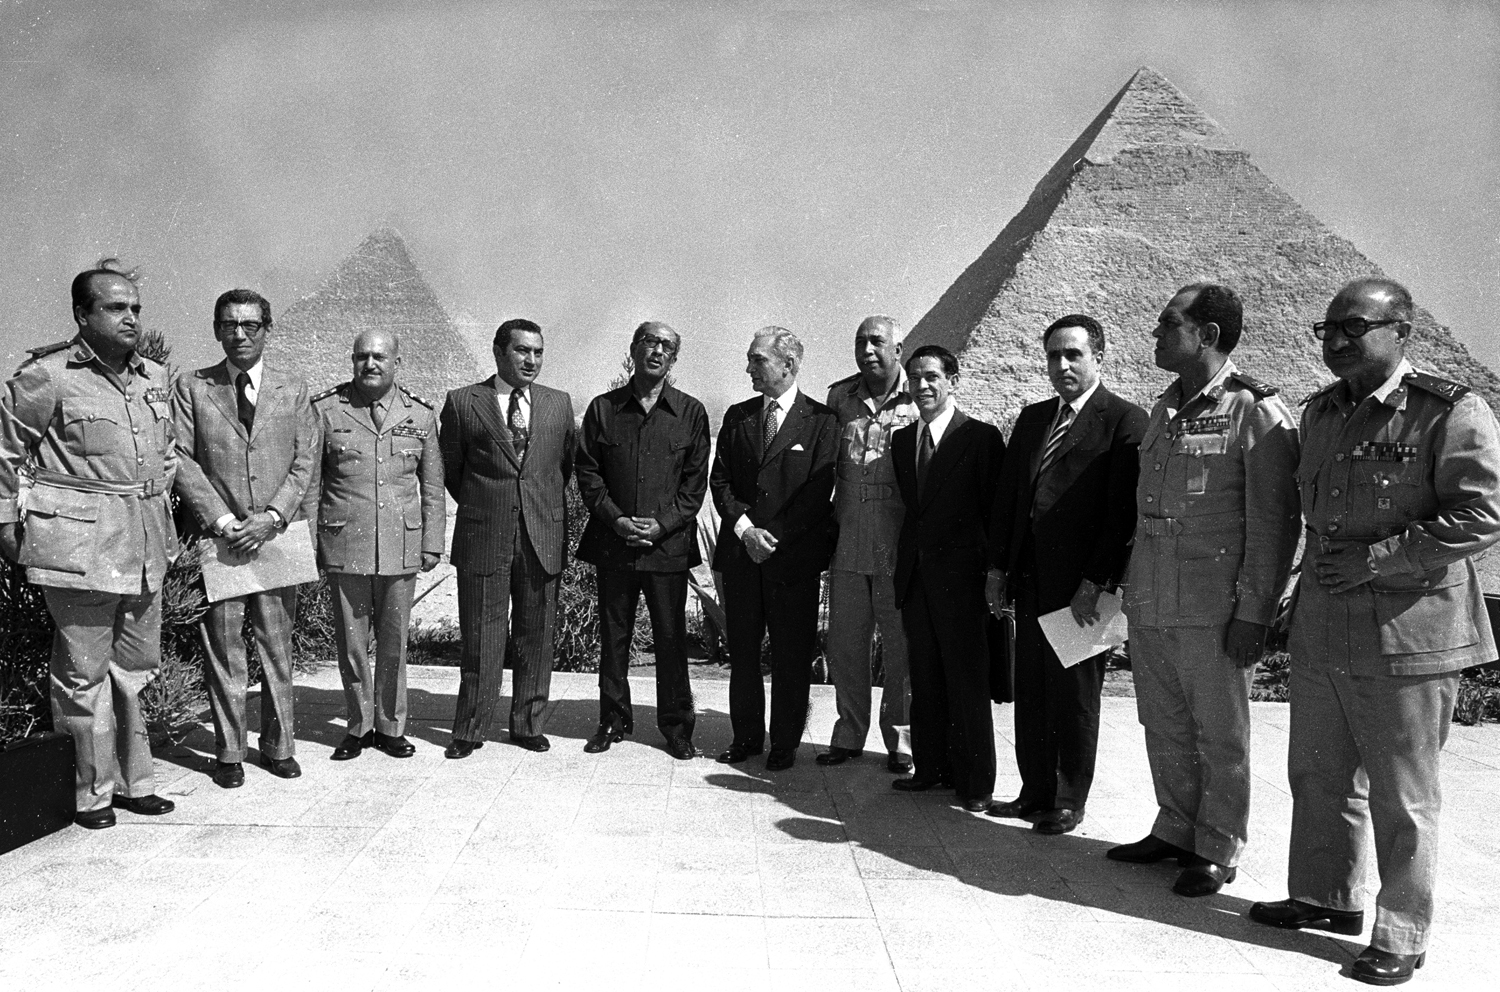 Egyptian President Anwar Sadat with his Cabinet at the Pyramids in Giza, outside Cairo, 1980. : Sadat-Mubarak 1978-1981 : BILL FOLEY